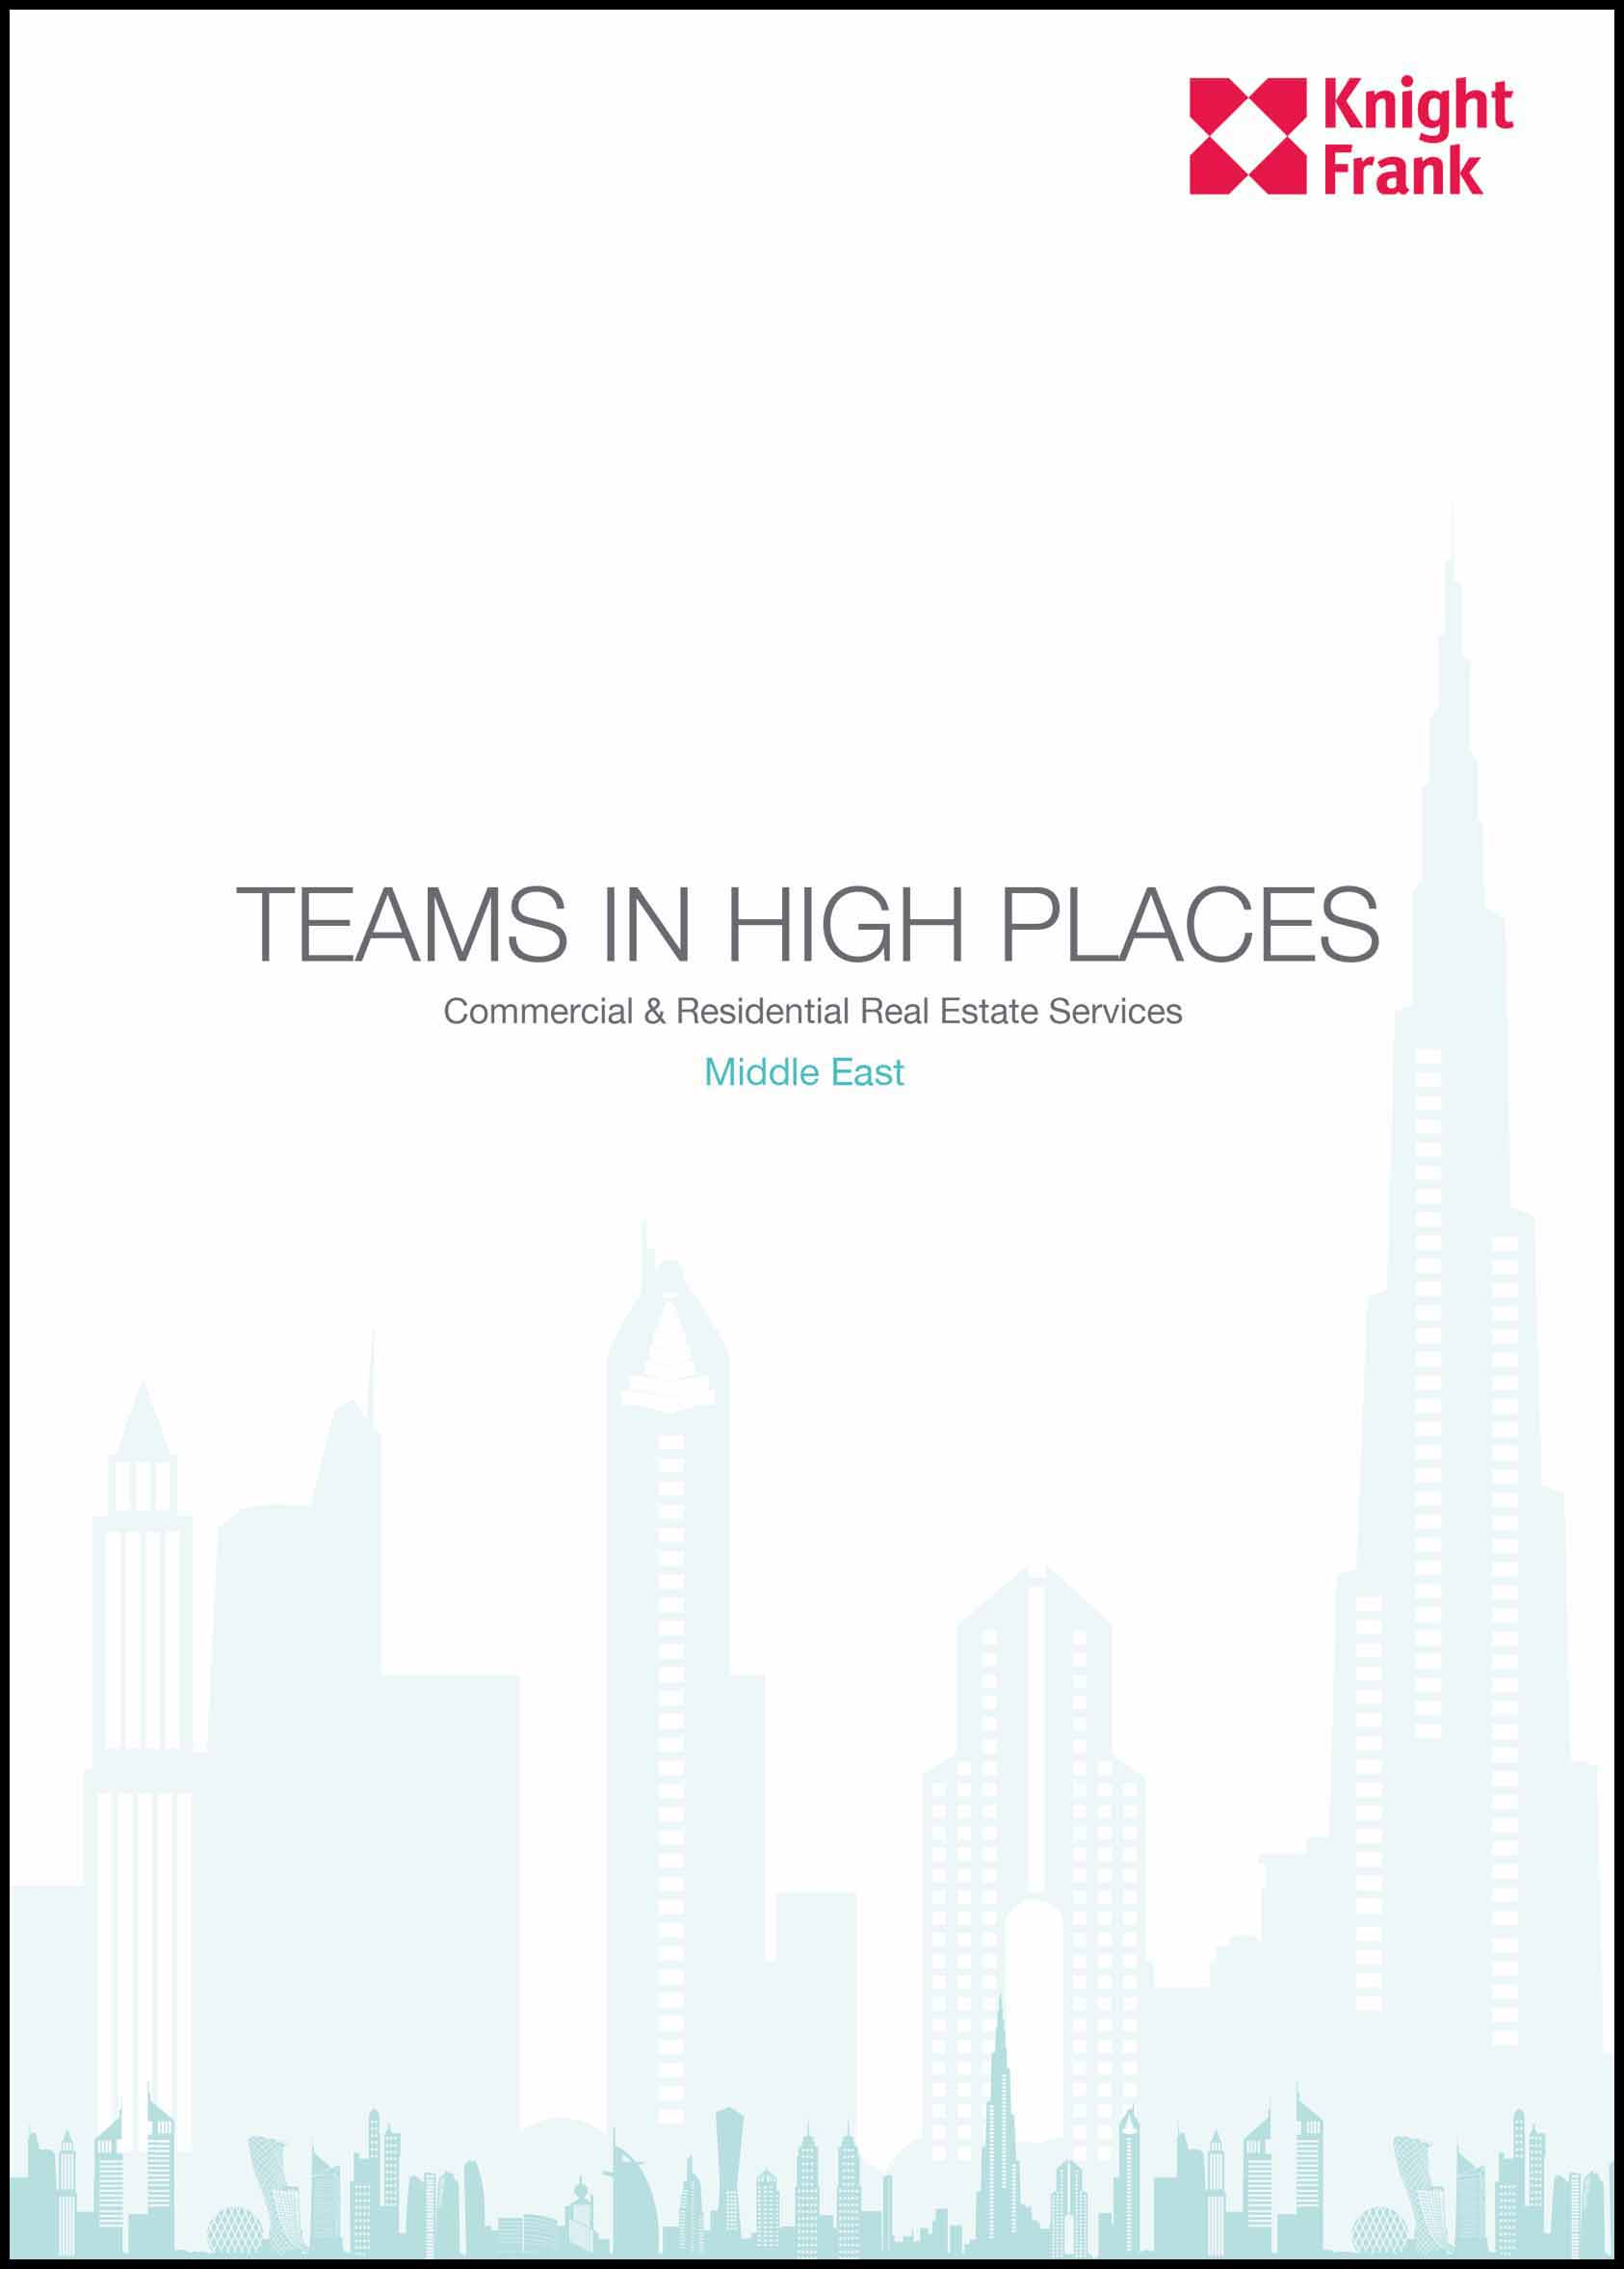 Teams and High Places